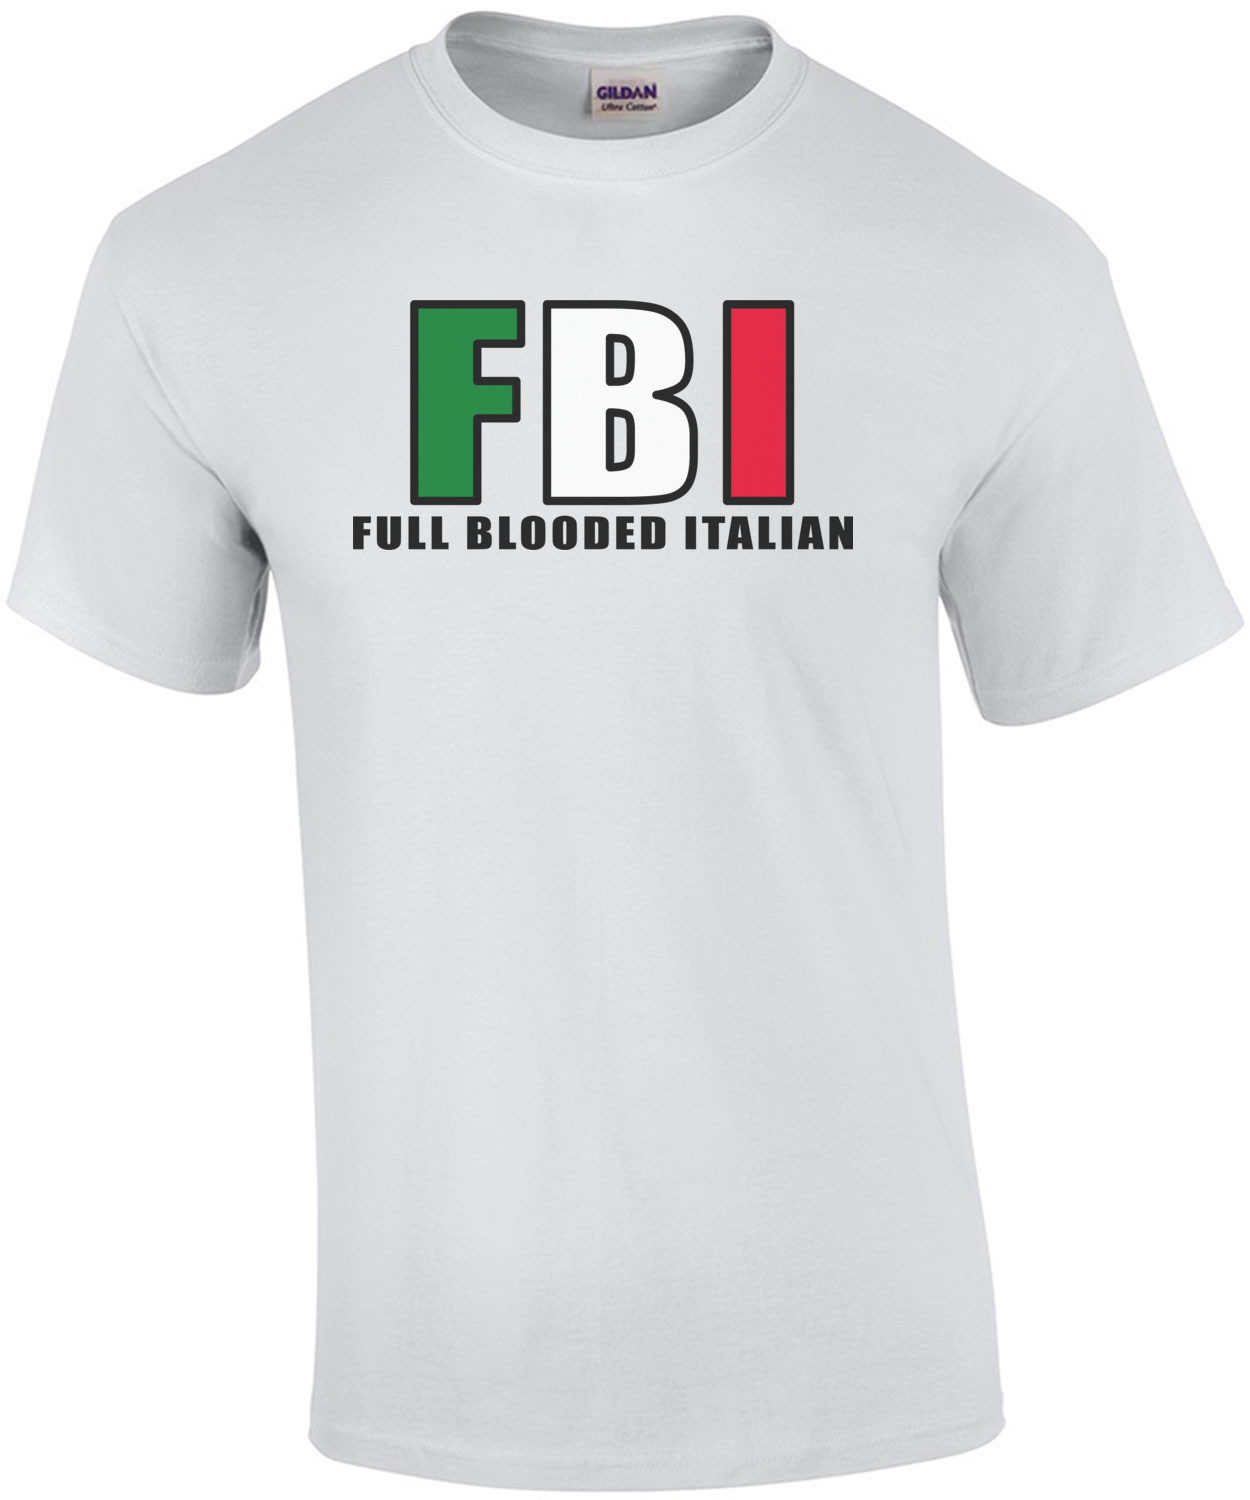 FBI - Full Blooded Italian T-Shirt